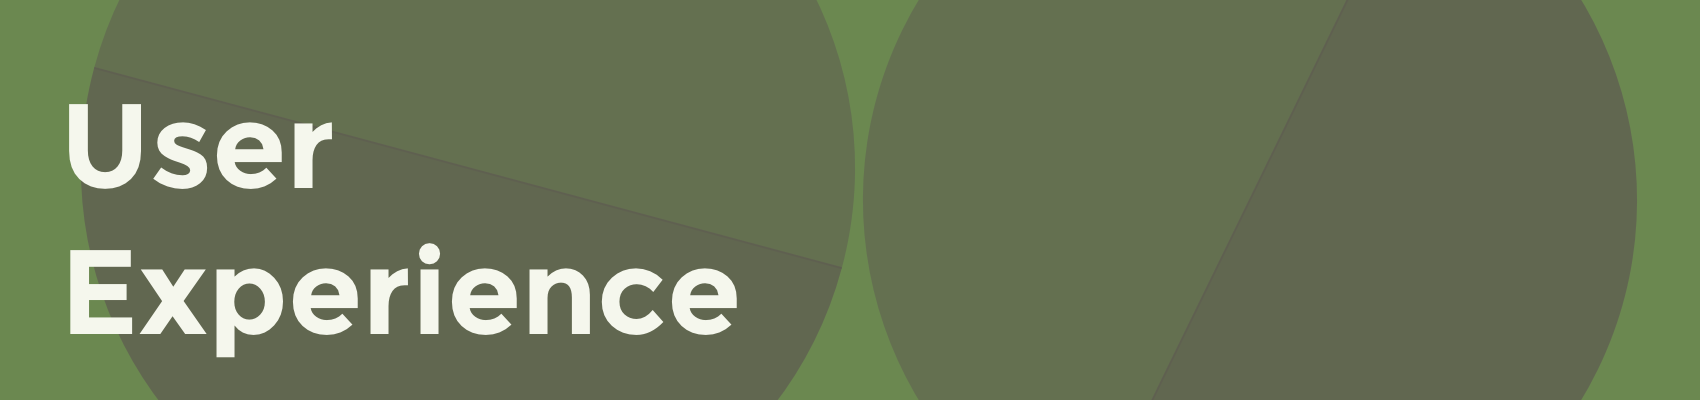 User Experience Banner.png